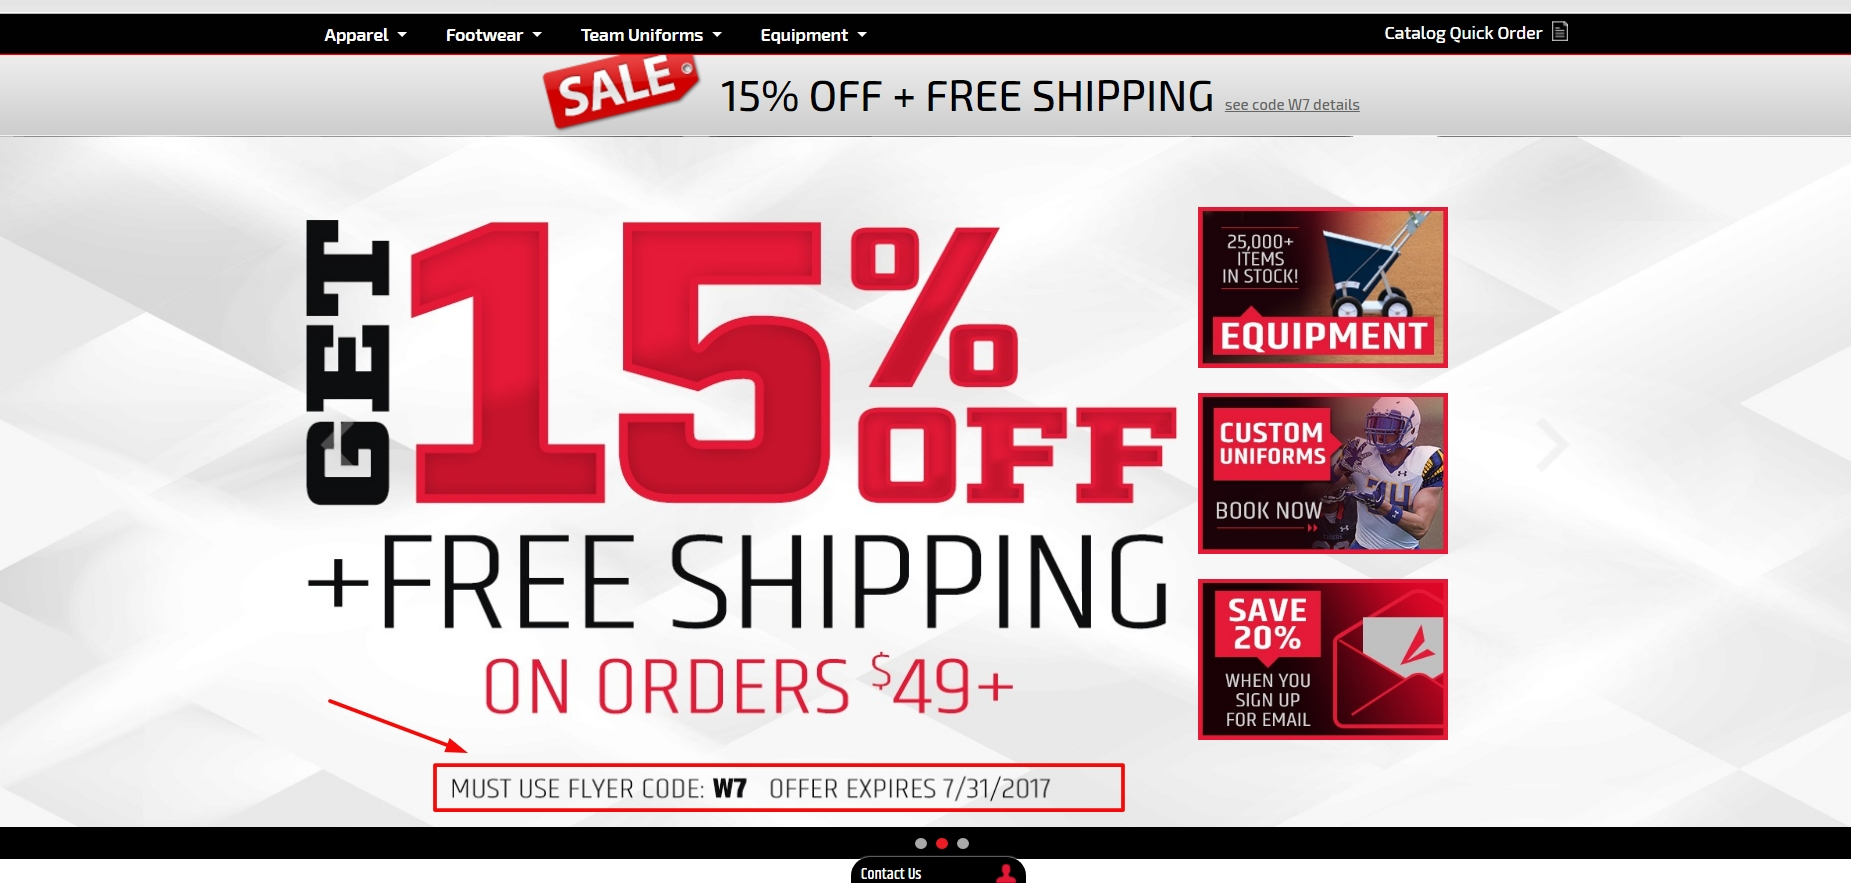 What is the biggest saving you can make on BSN? The biggest saving reported by our customers is $ How much can you save on BSN using coupons? Our customers reported an average saving of $ Is BSN offering free shipping deals and coupons? Yes, BSN has 2 .